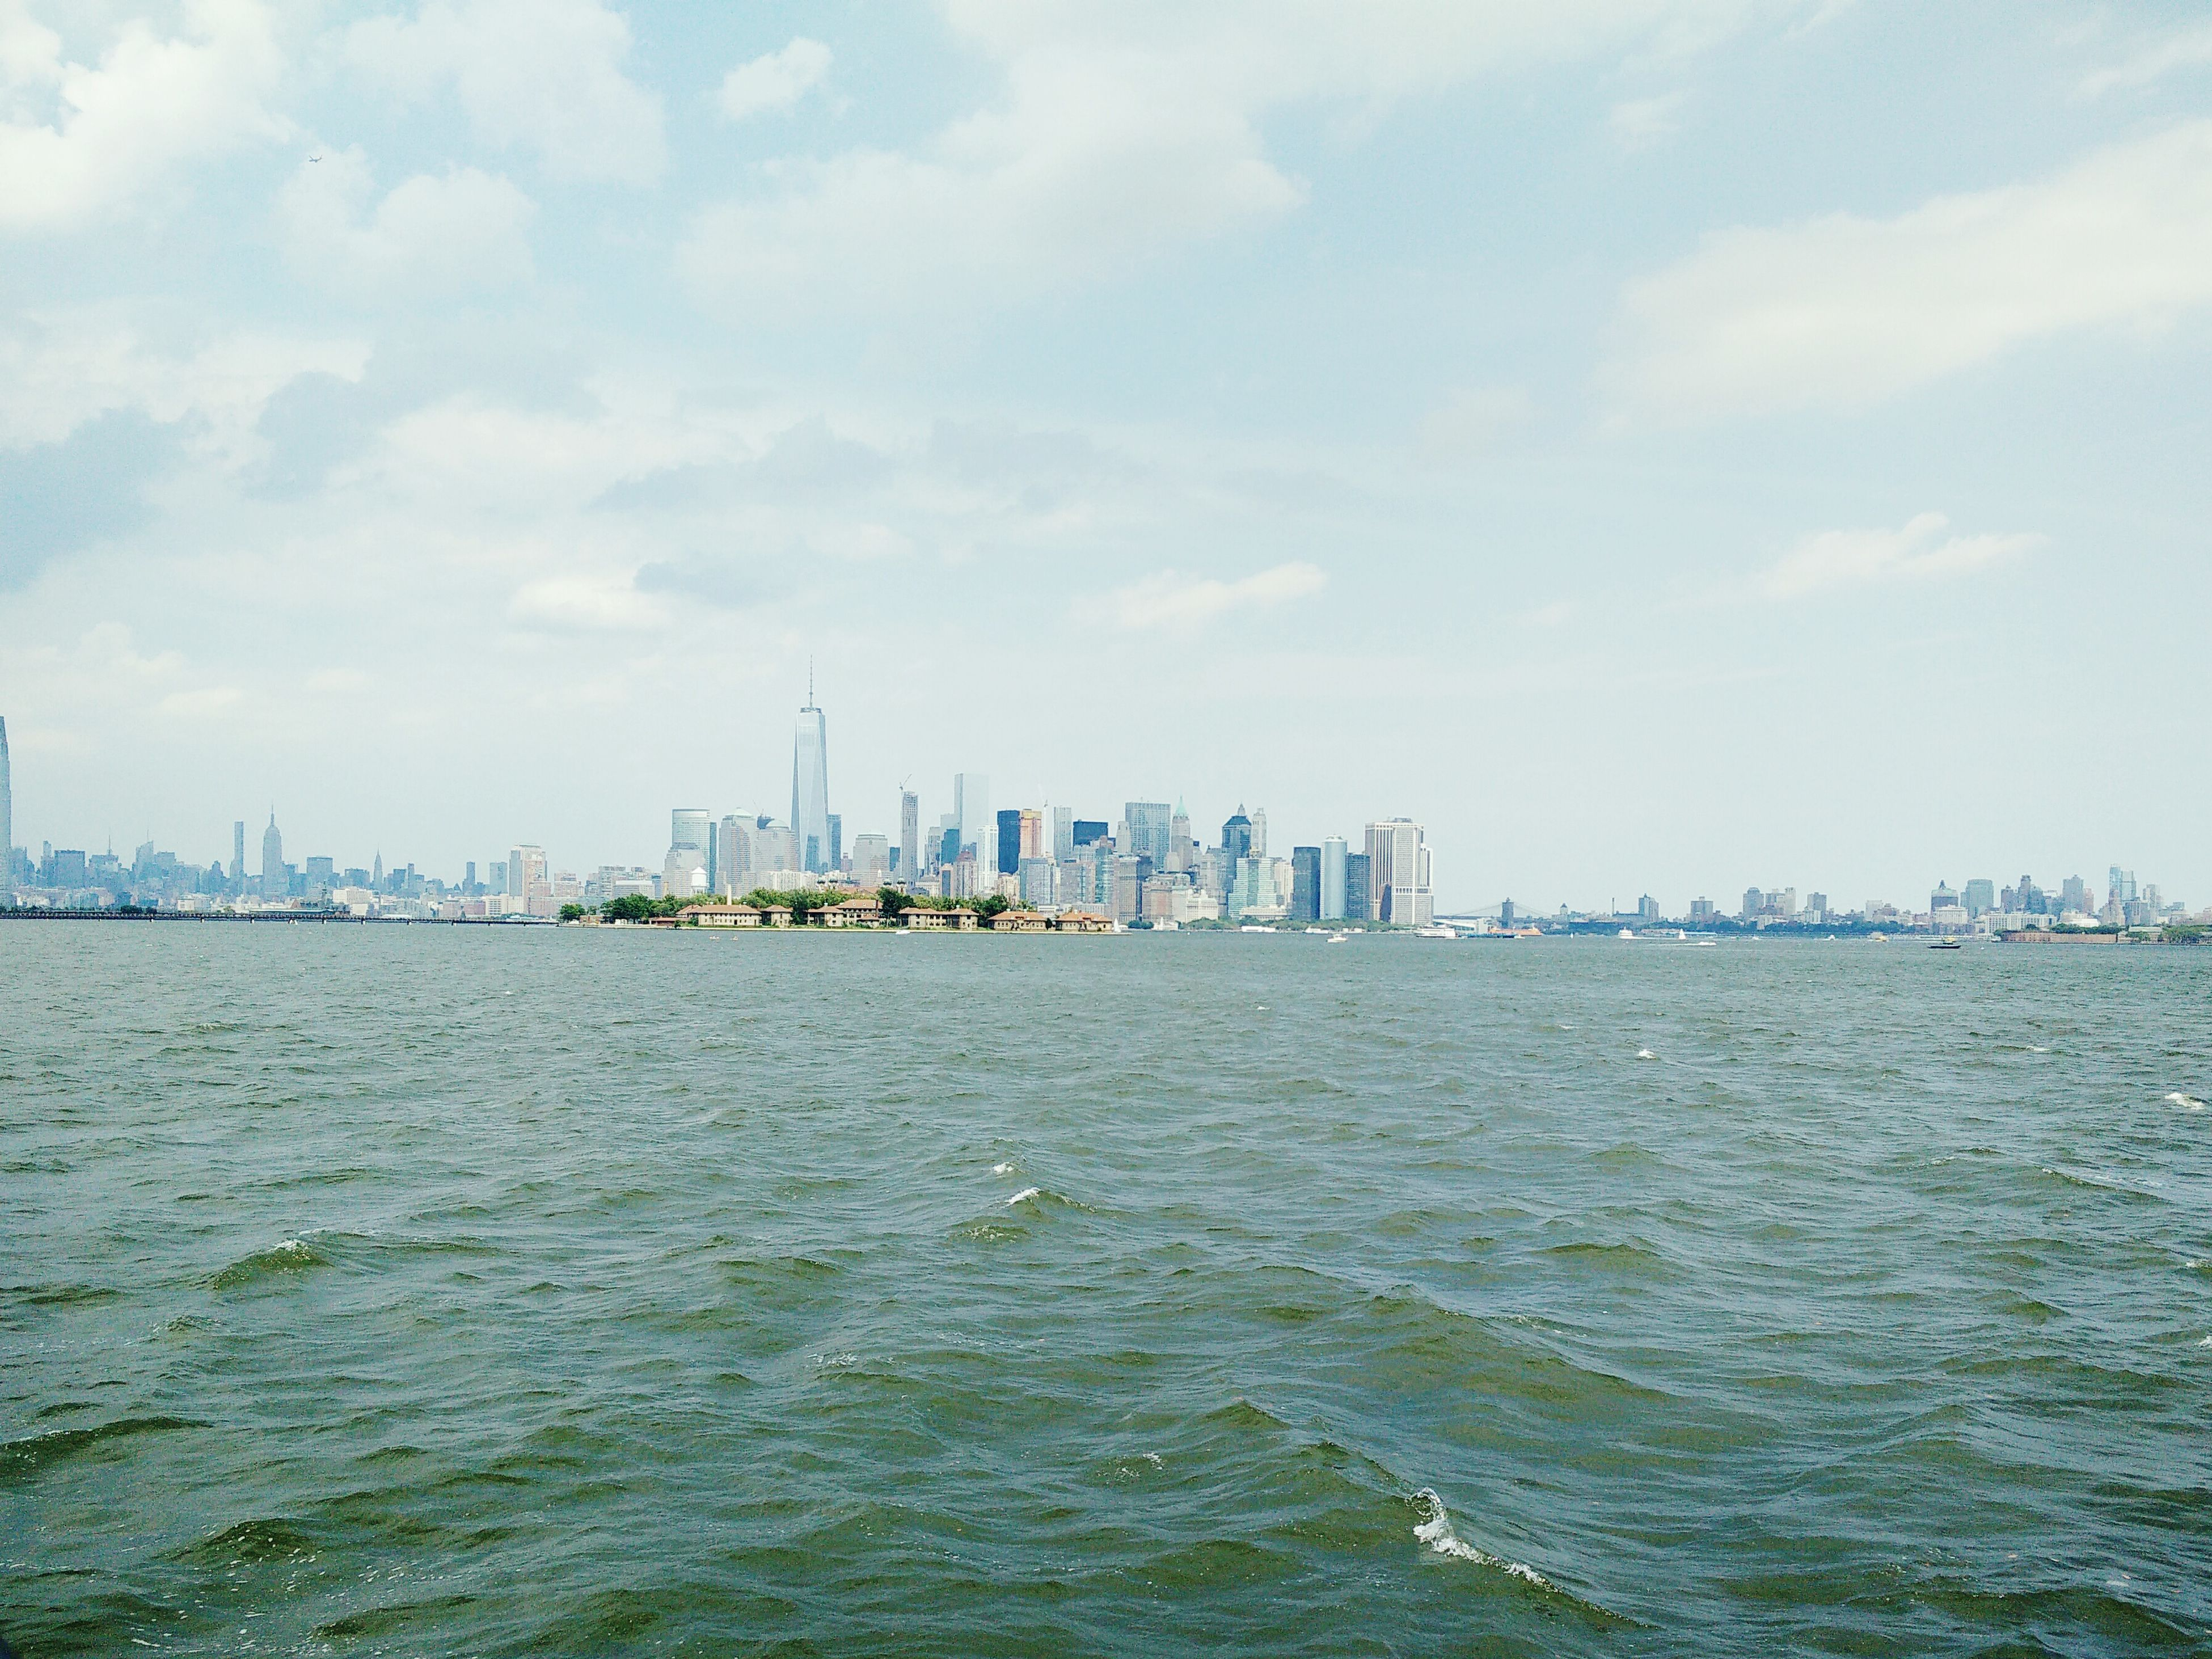 water, building exterior, architecture, waterfront, built structure, city, sea, sky, cityscape, skyscraper, urban skyline, river, tower, tall - high, rippled, cloud - sky, cloud, skyline, mid distance, day